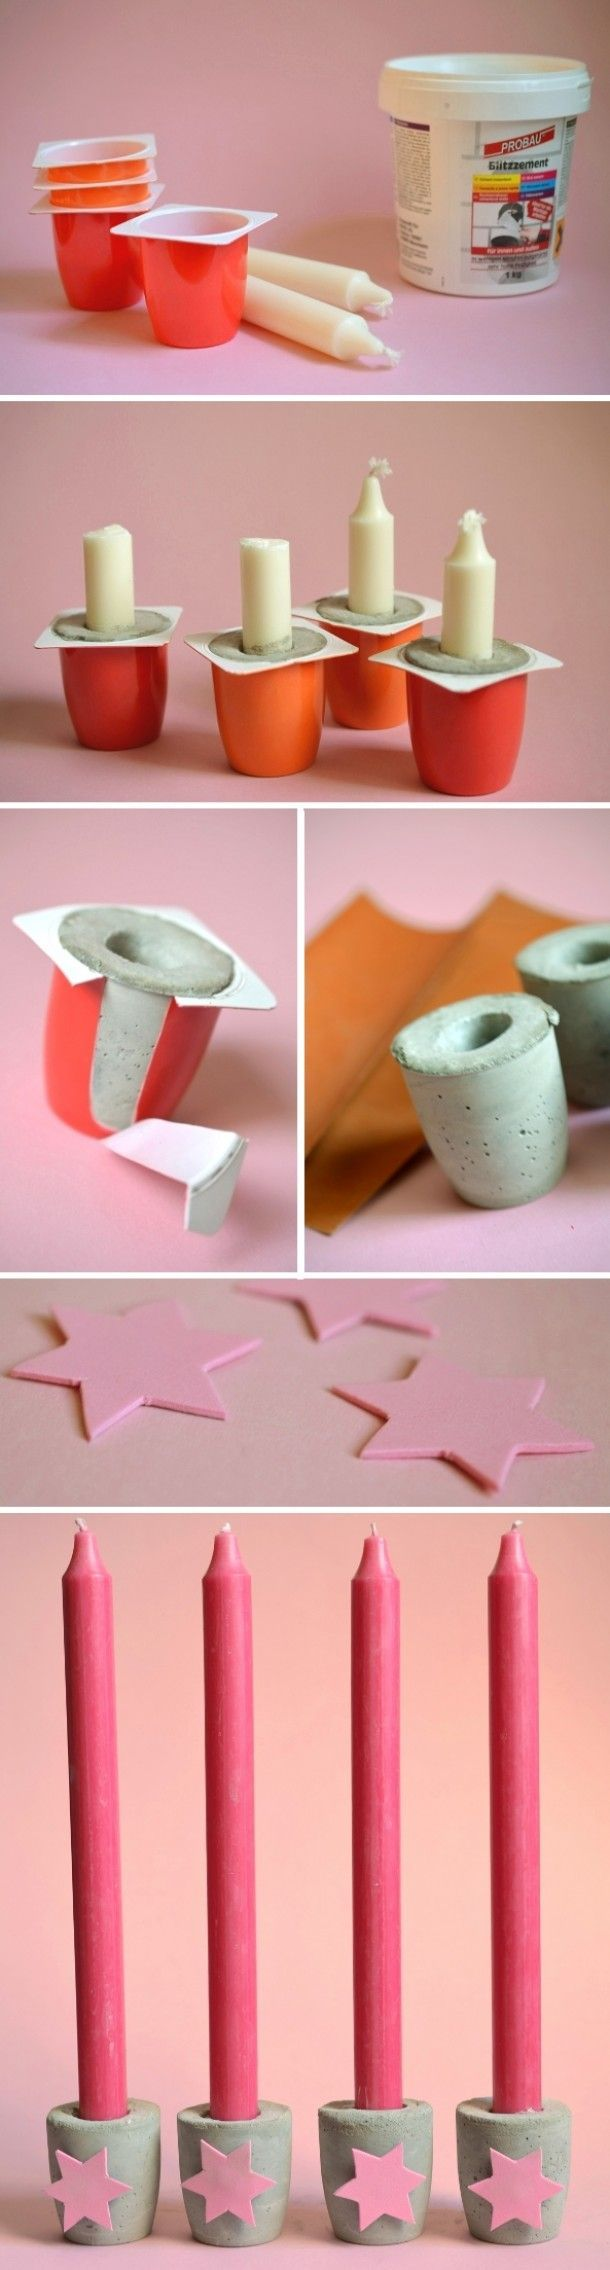 Top 30 DIY Concrete Projects For The Crafty Side Of You_homesthetics.net (21)